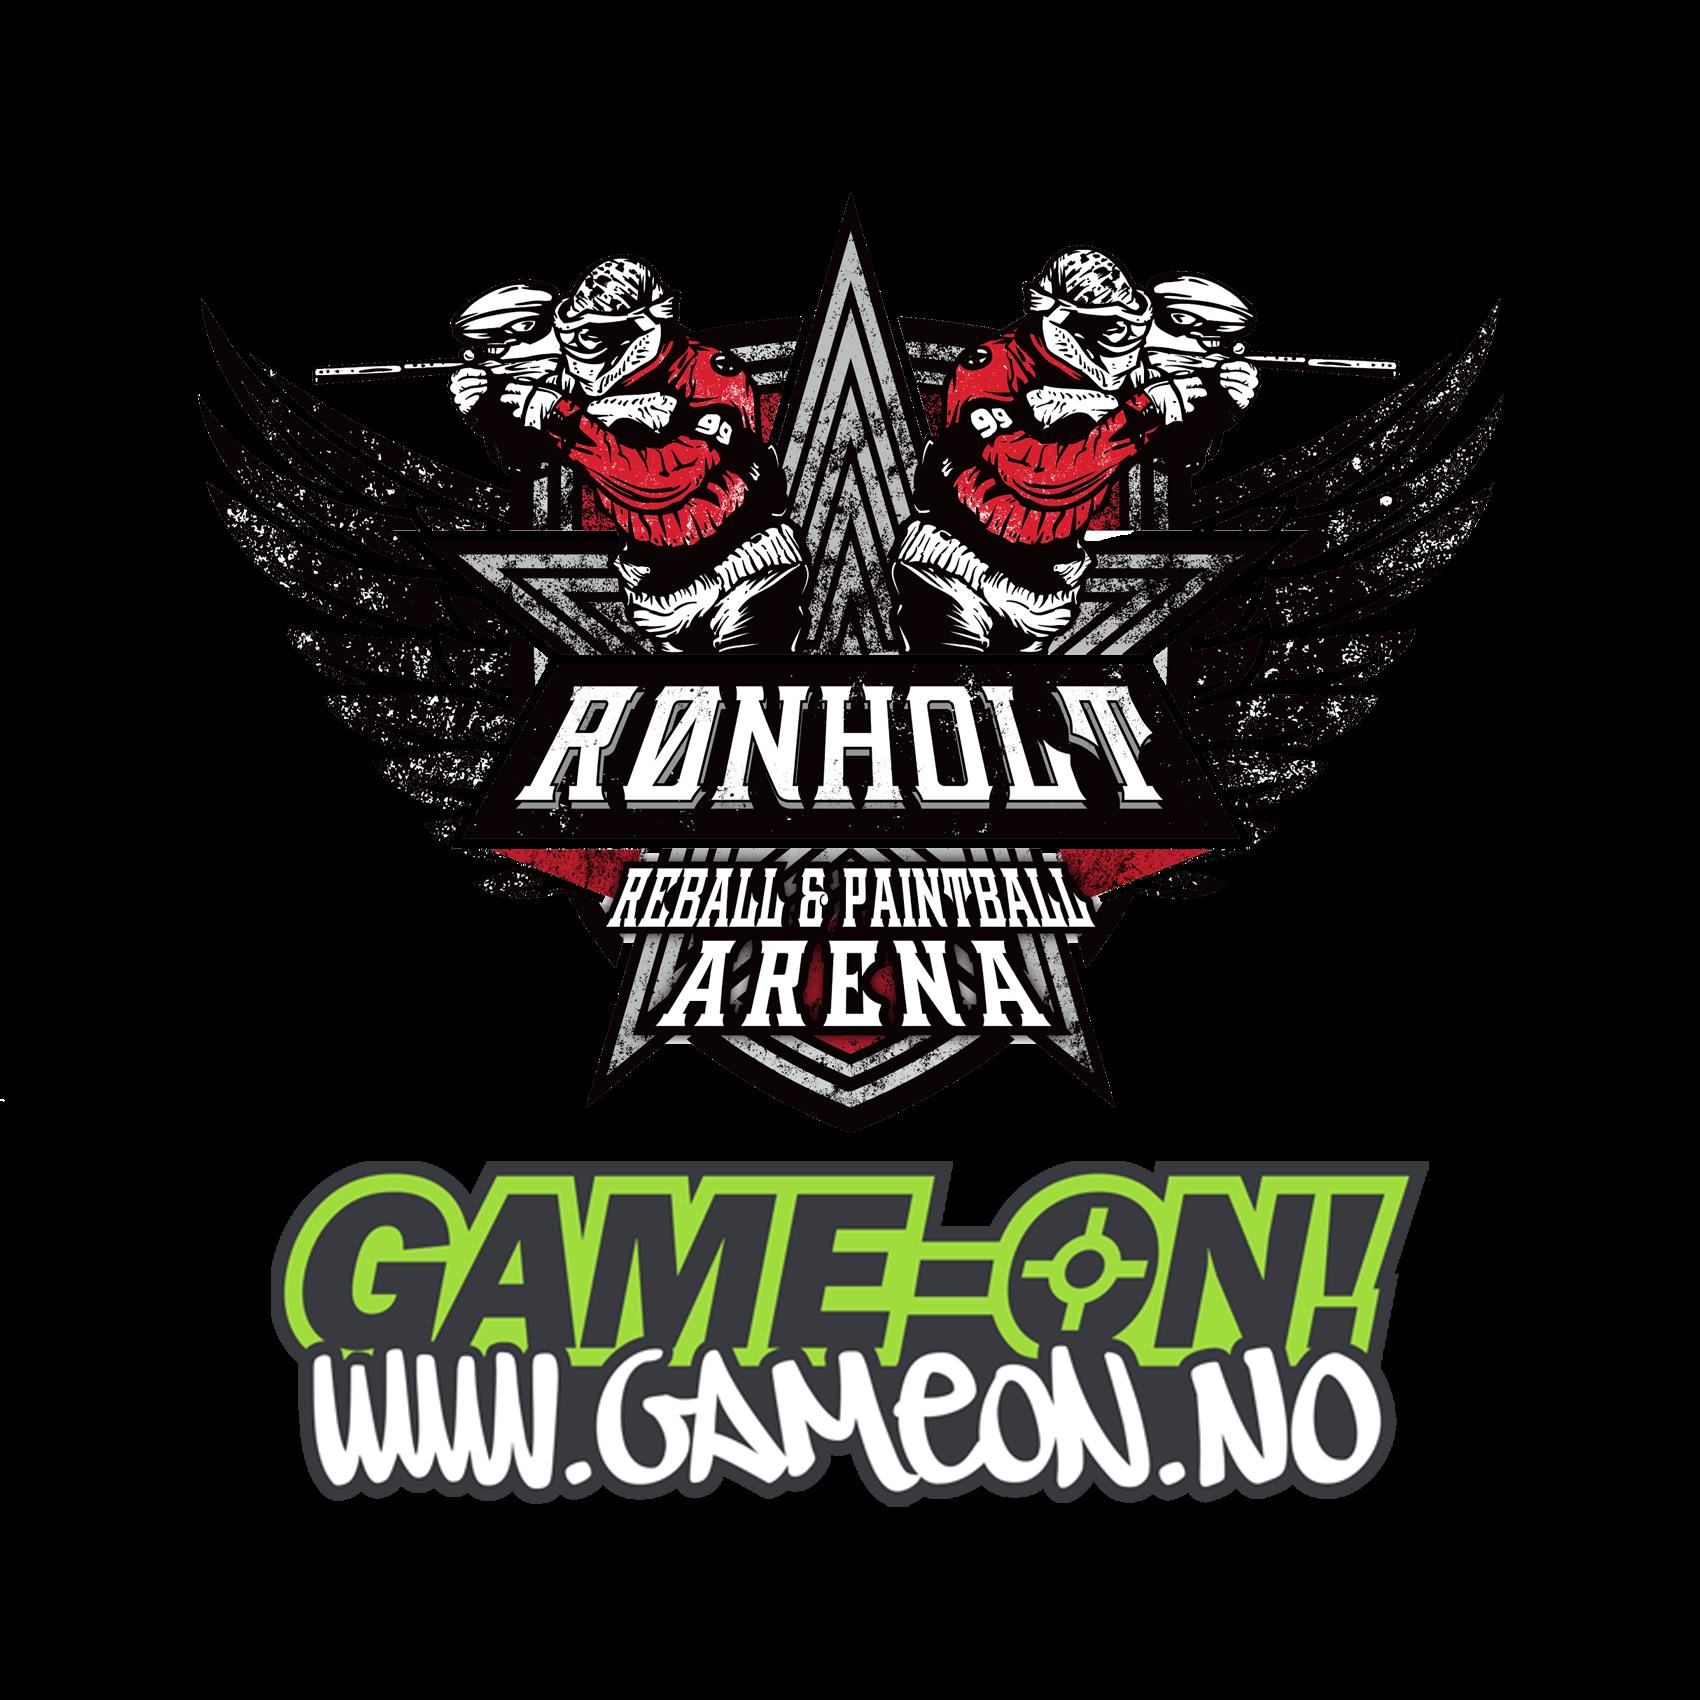 © Rønholt Reball& Paintball